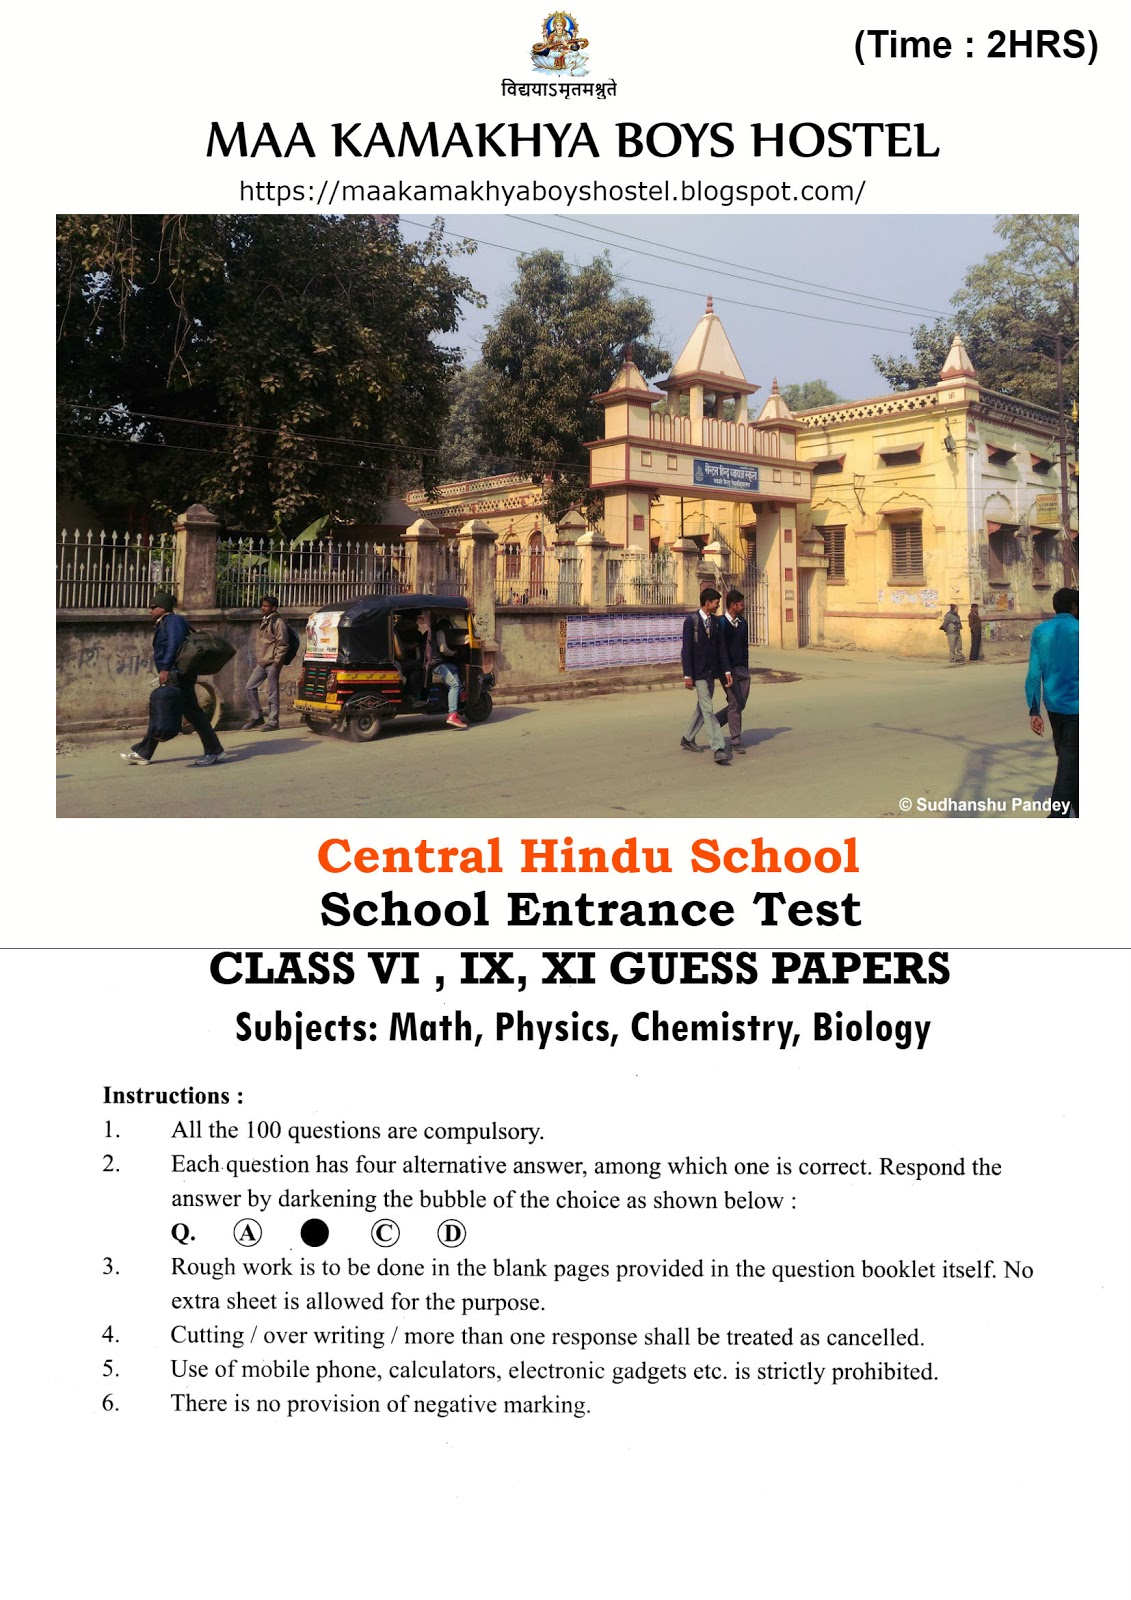 CHS Previous Year Question Papers Class 6th 9th 11th - Maa Kamakhya